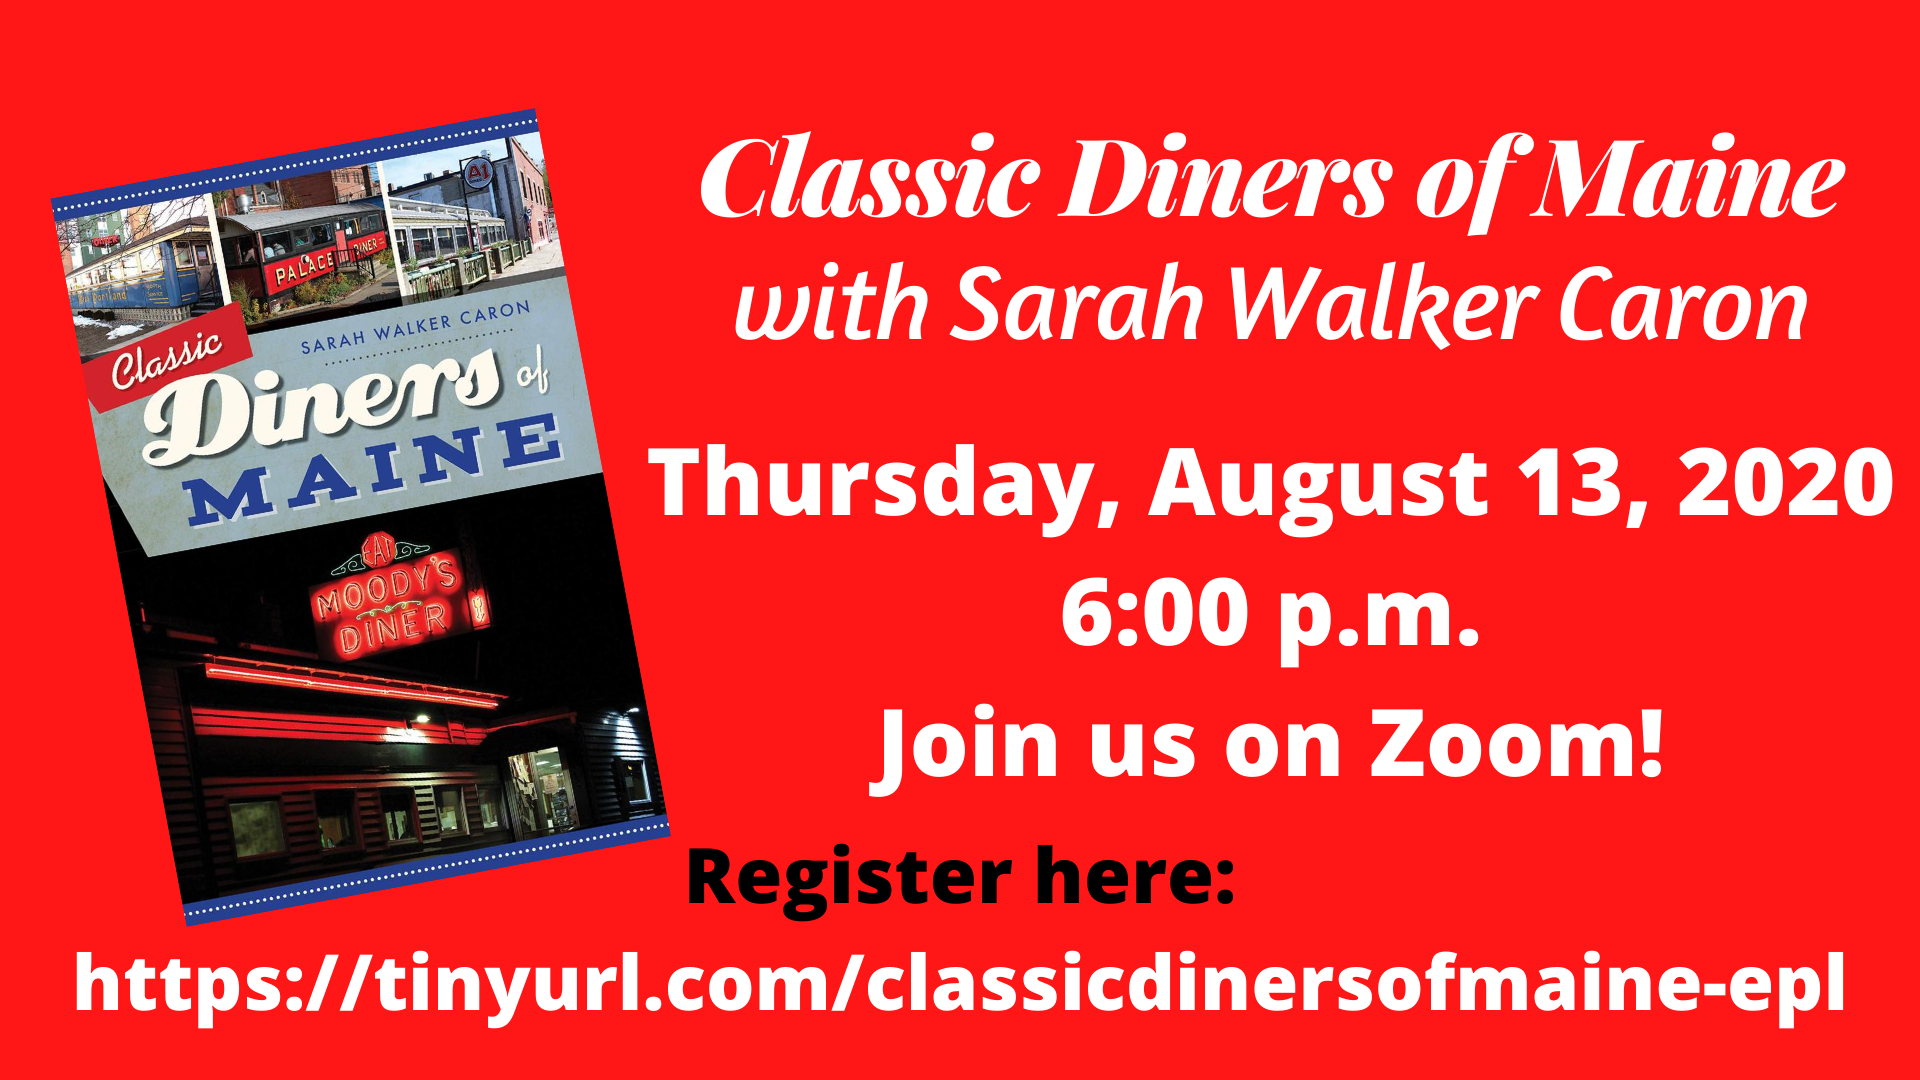 Classic Diners of Maine